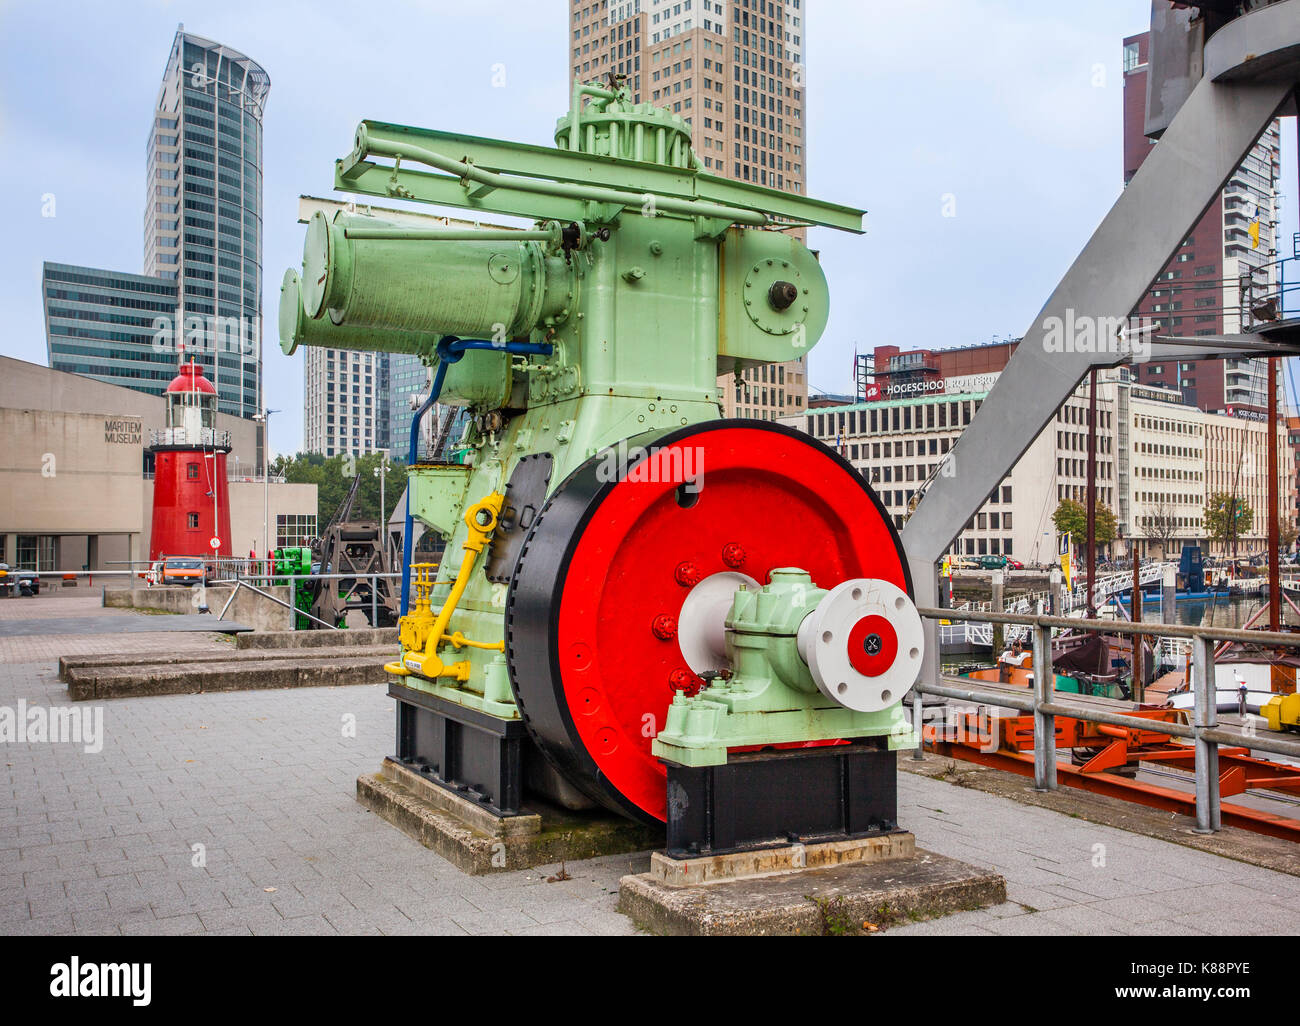 Netherlands, South Holland, Rotterdam, Leuvehaven, historic machinery at the Maritime Museum Harbour - Stock Image